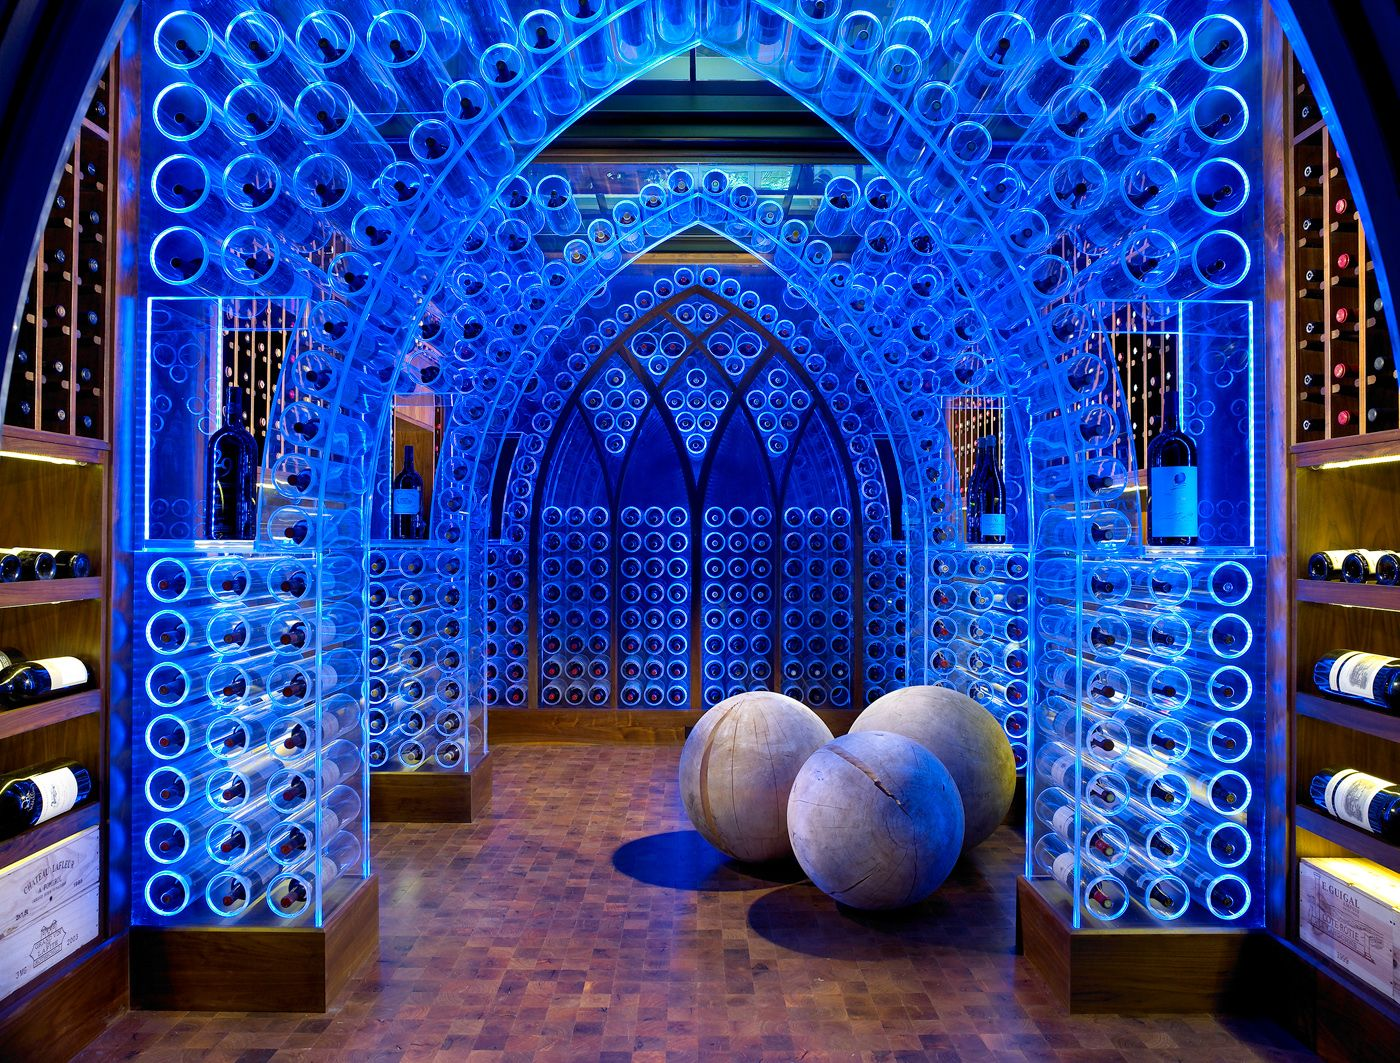 Led Lights Make This Wine Cellar Glow Want To Find Out How To Do